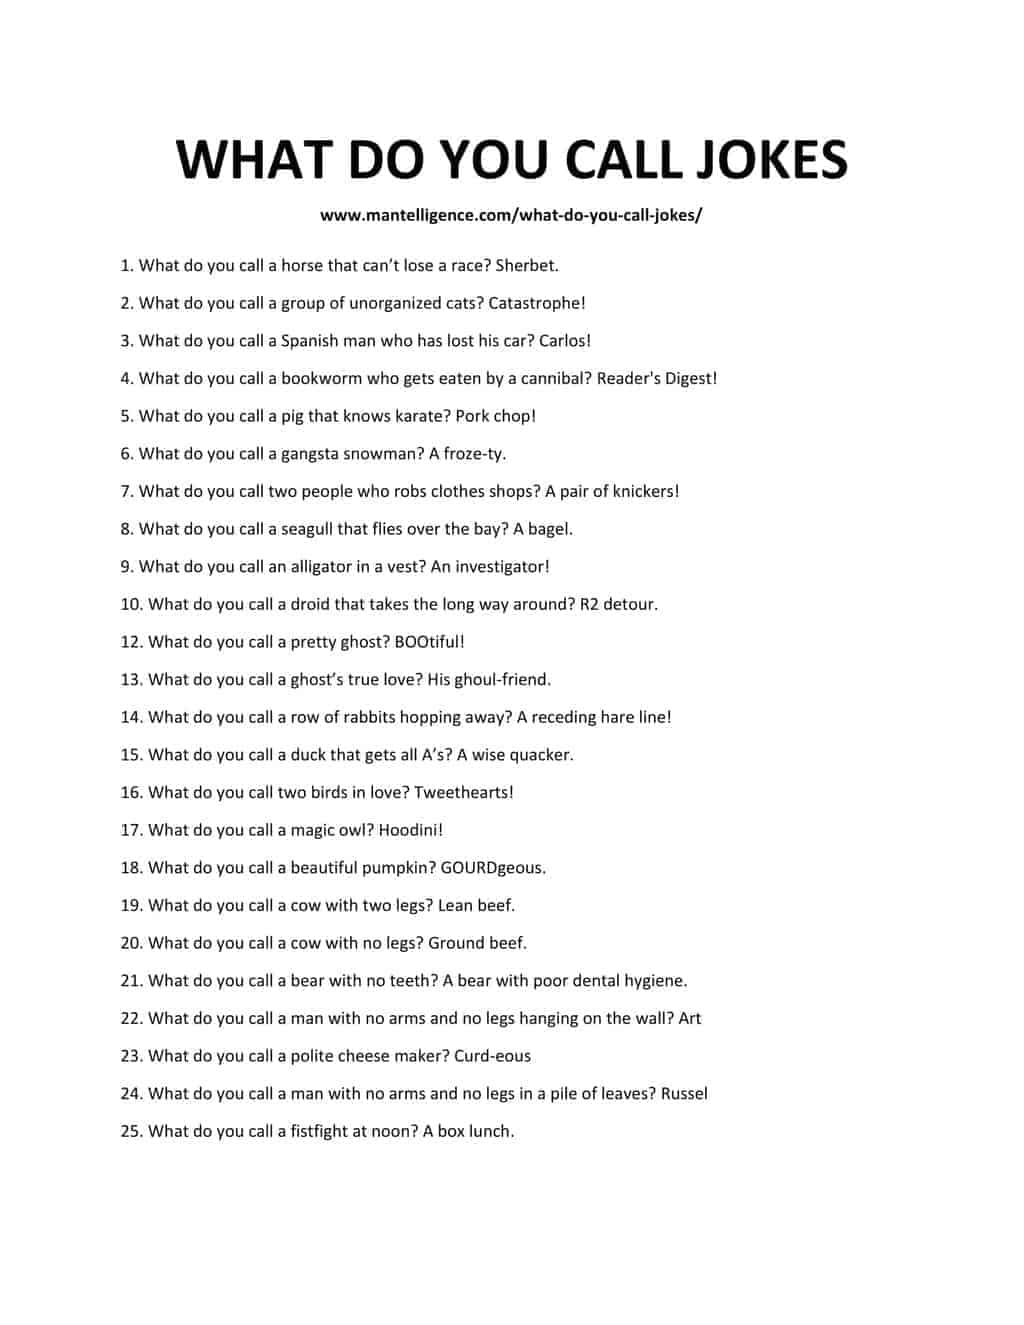 WHAT_DO_YOU_CALL_JOKES-1[1]